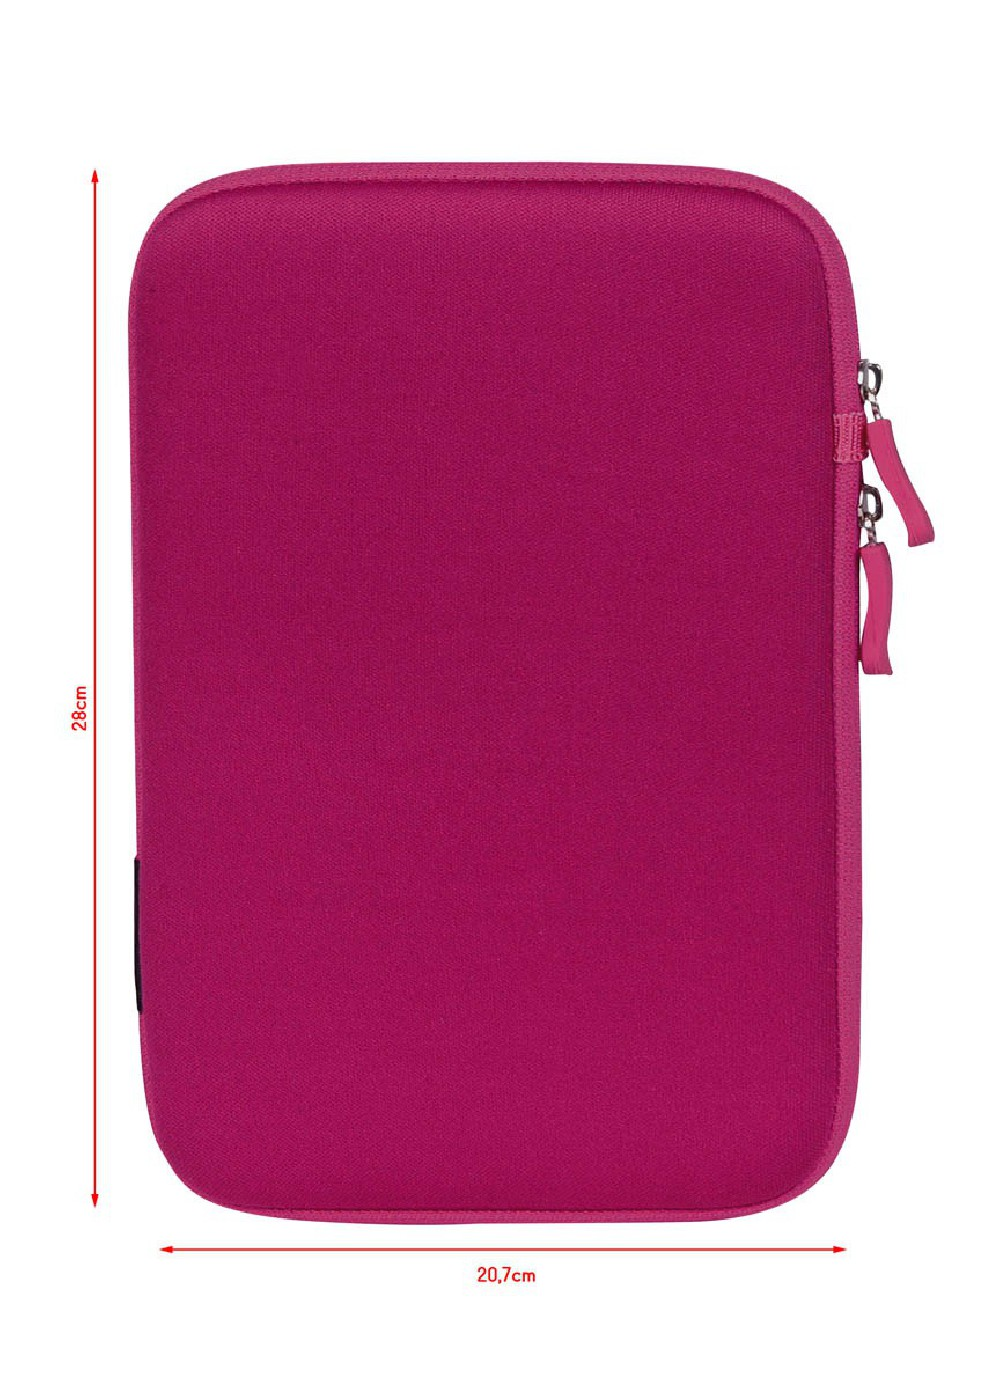 "SLIM COLORS-10"" SLEEVE- PINK"